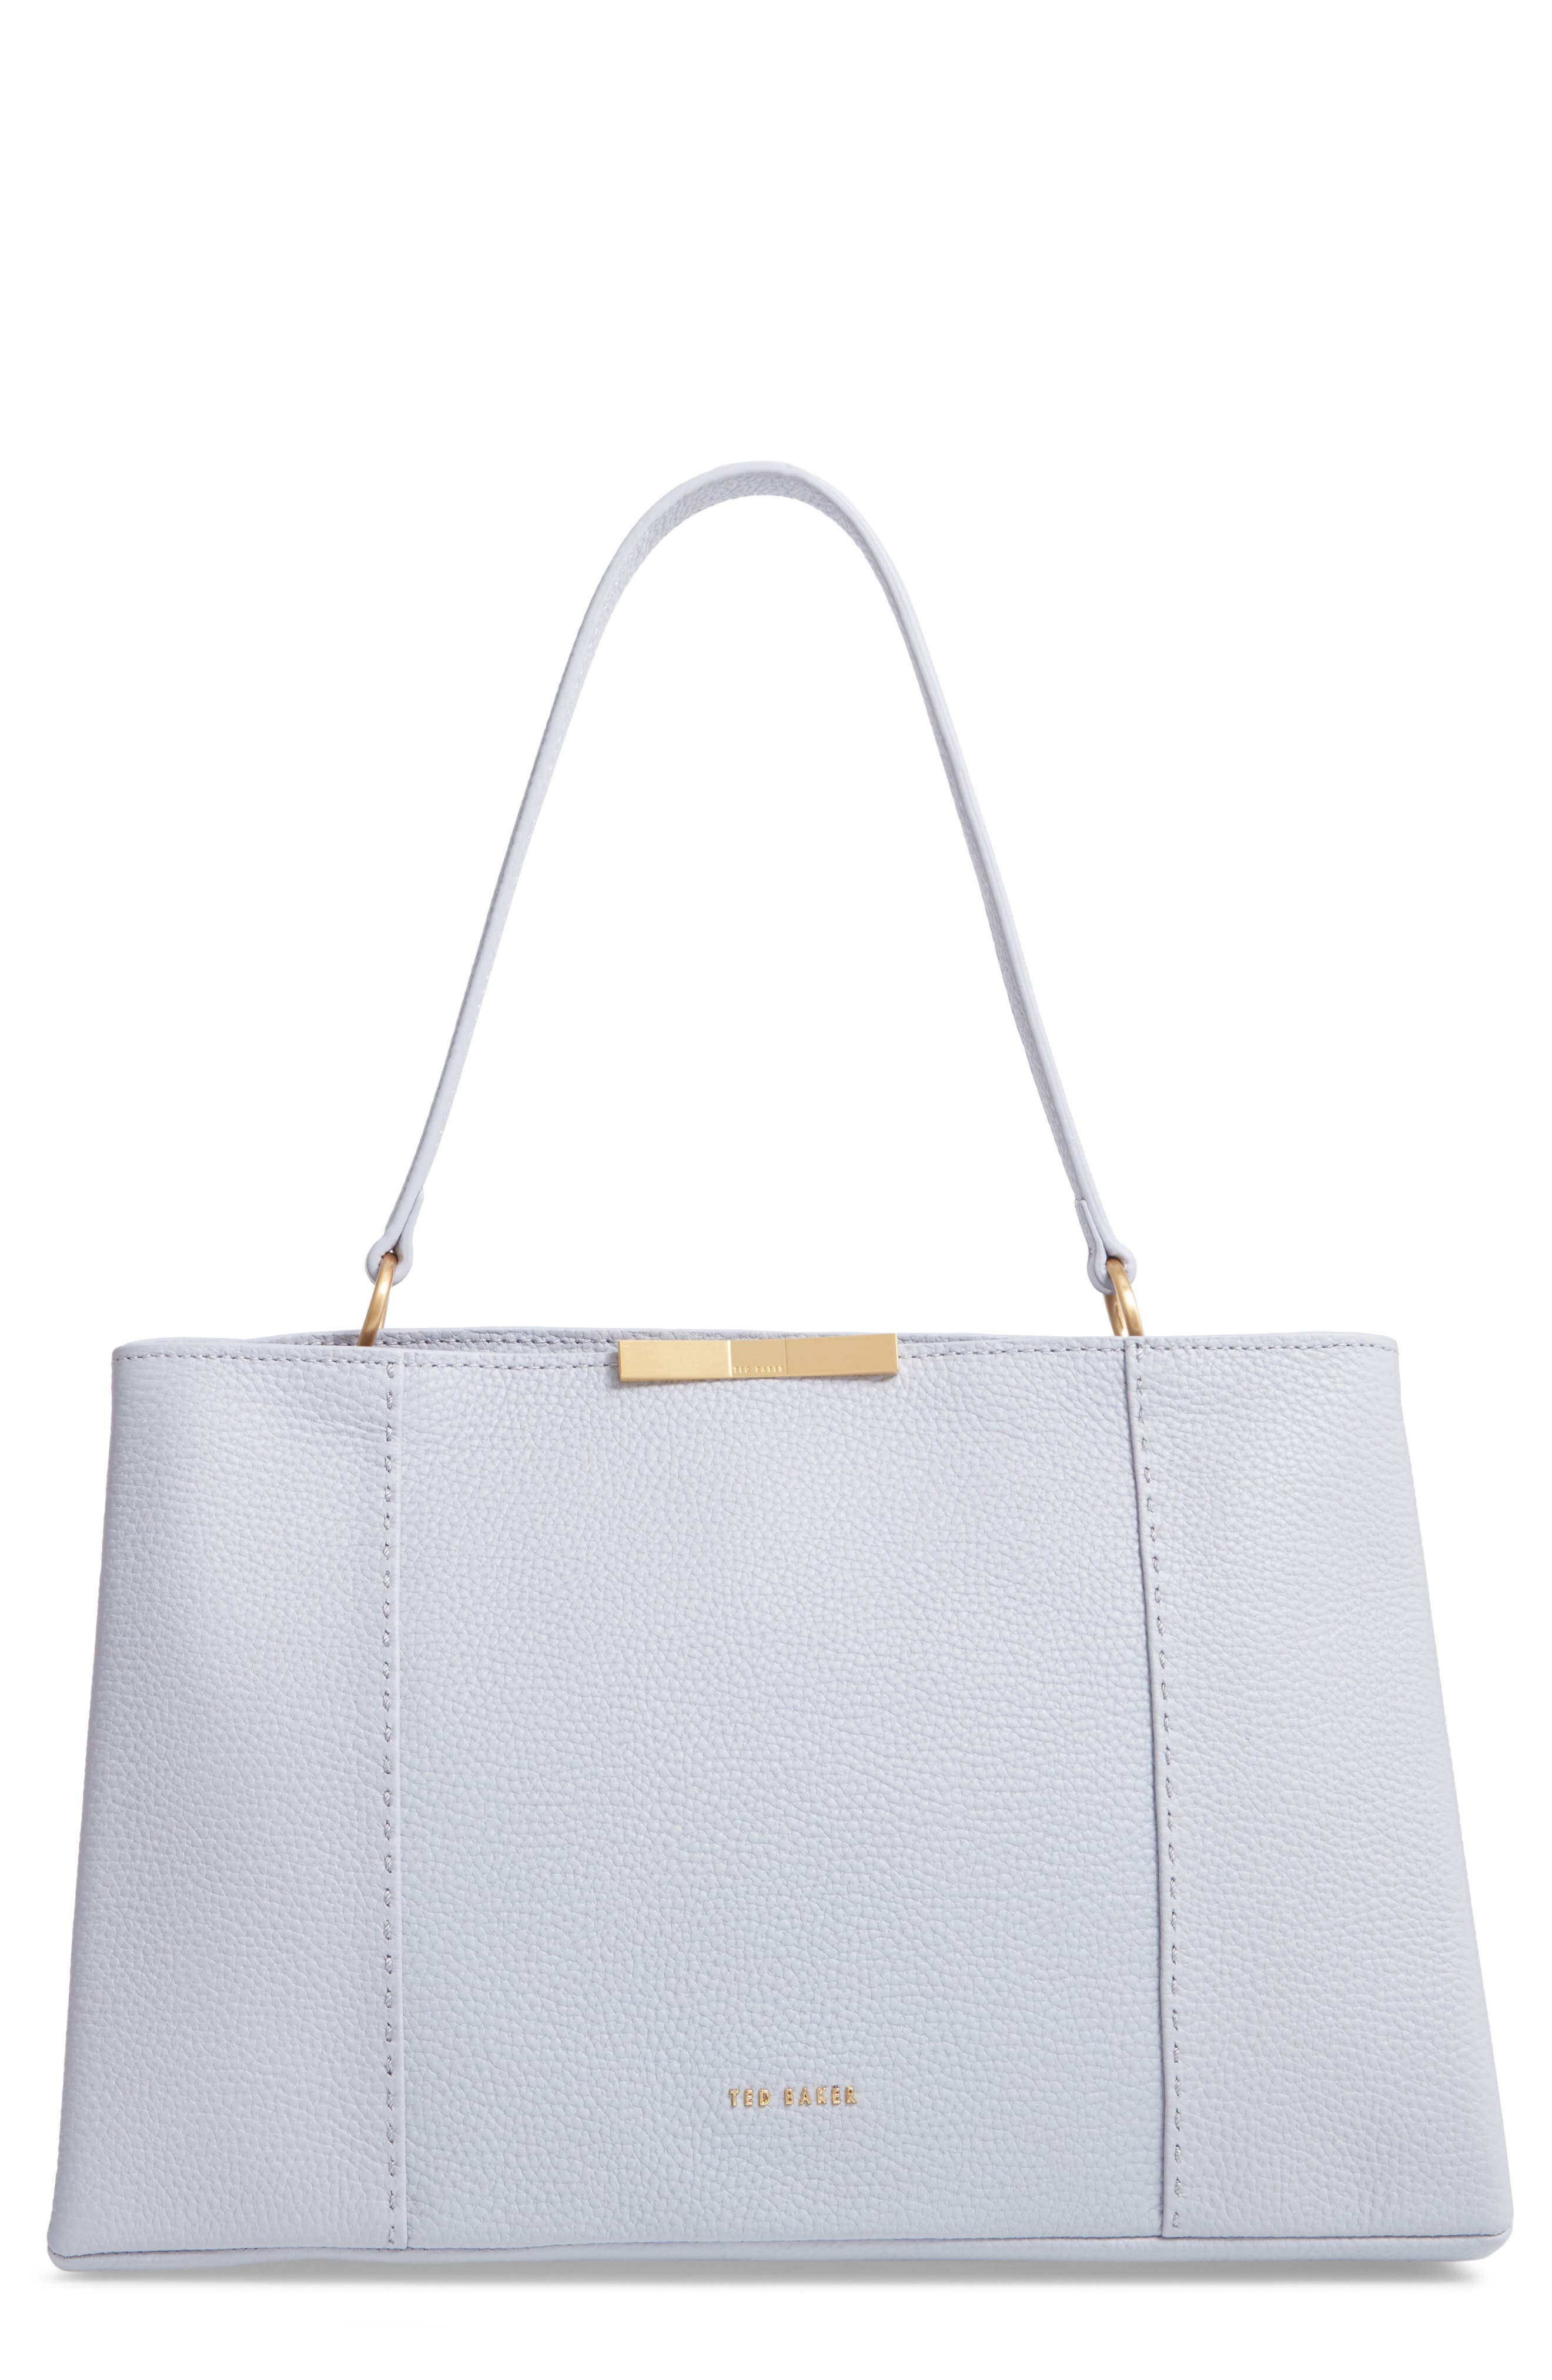 TED BAKER LONDON, Camieli Bow Tote, Main thumbnail 1, color, PL-BLUE